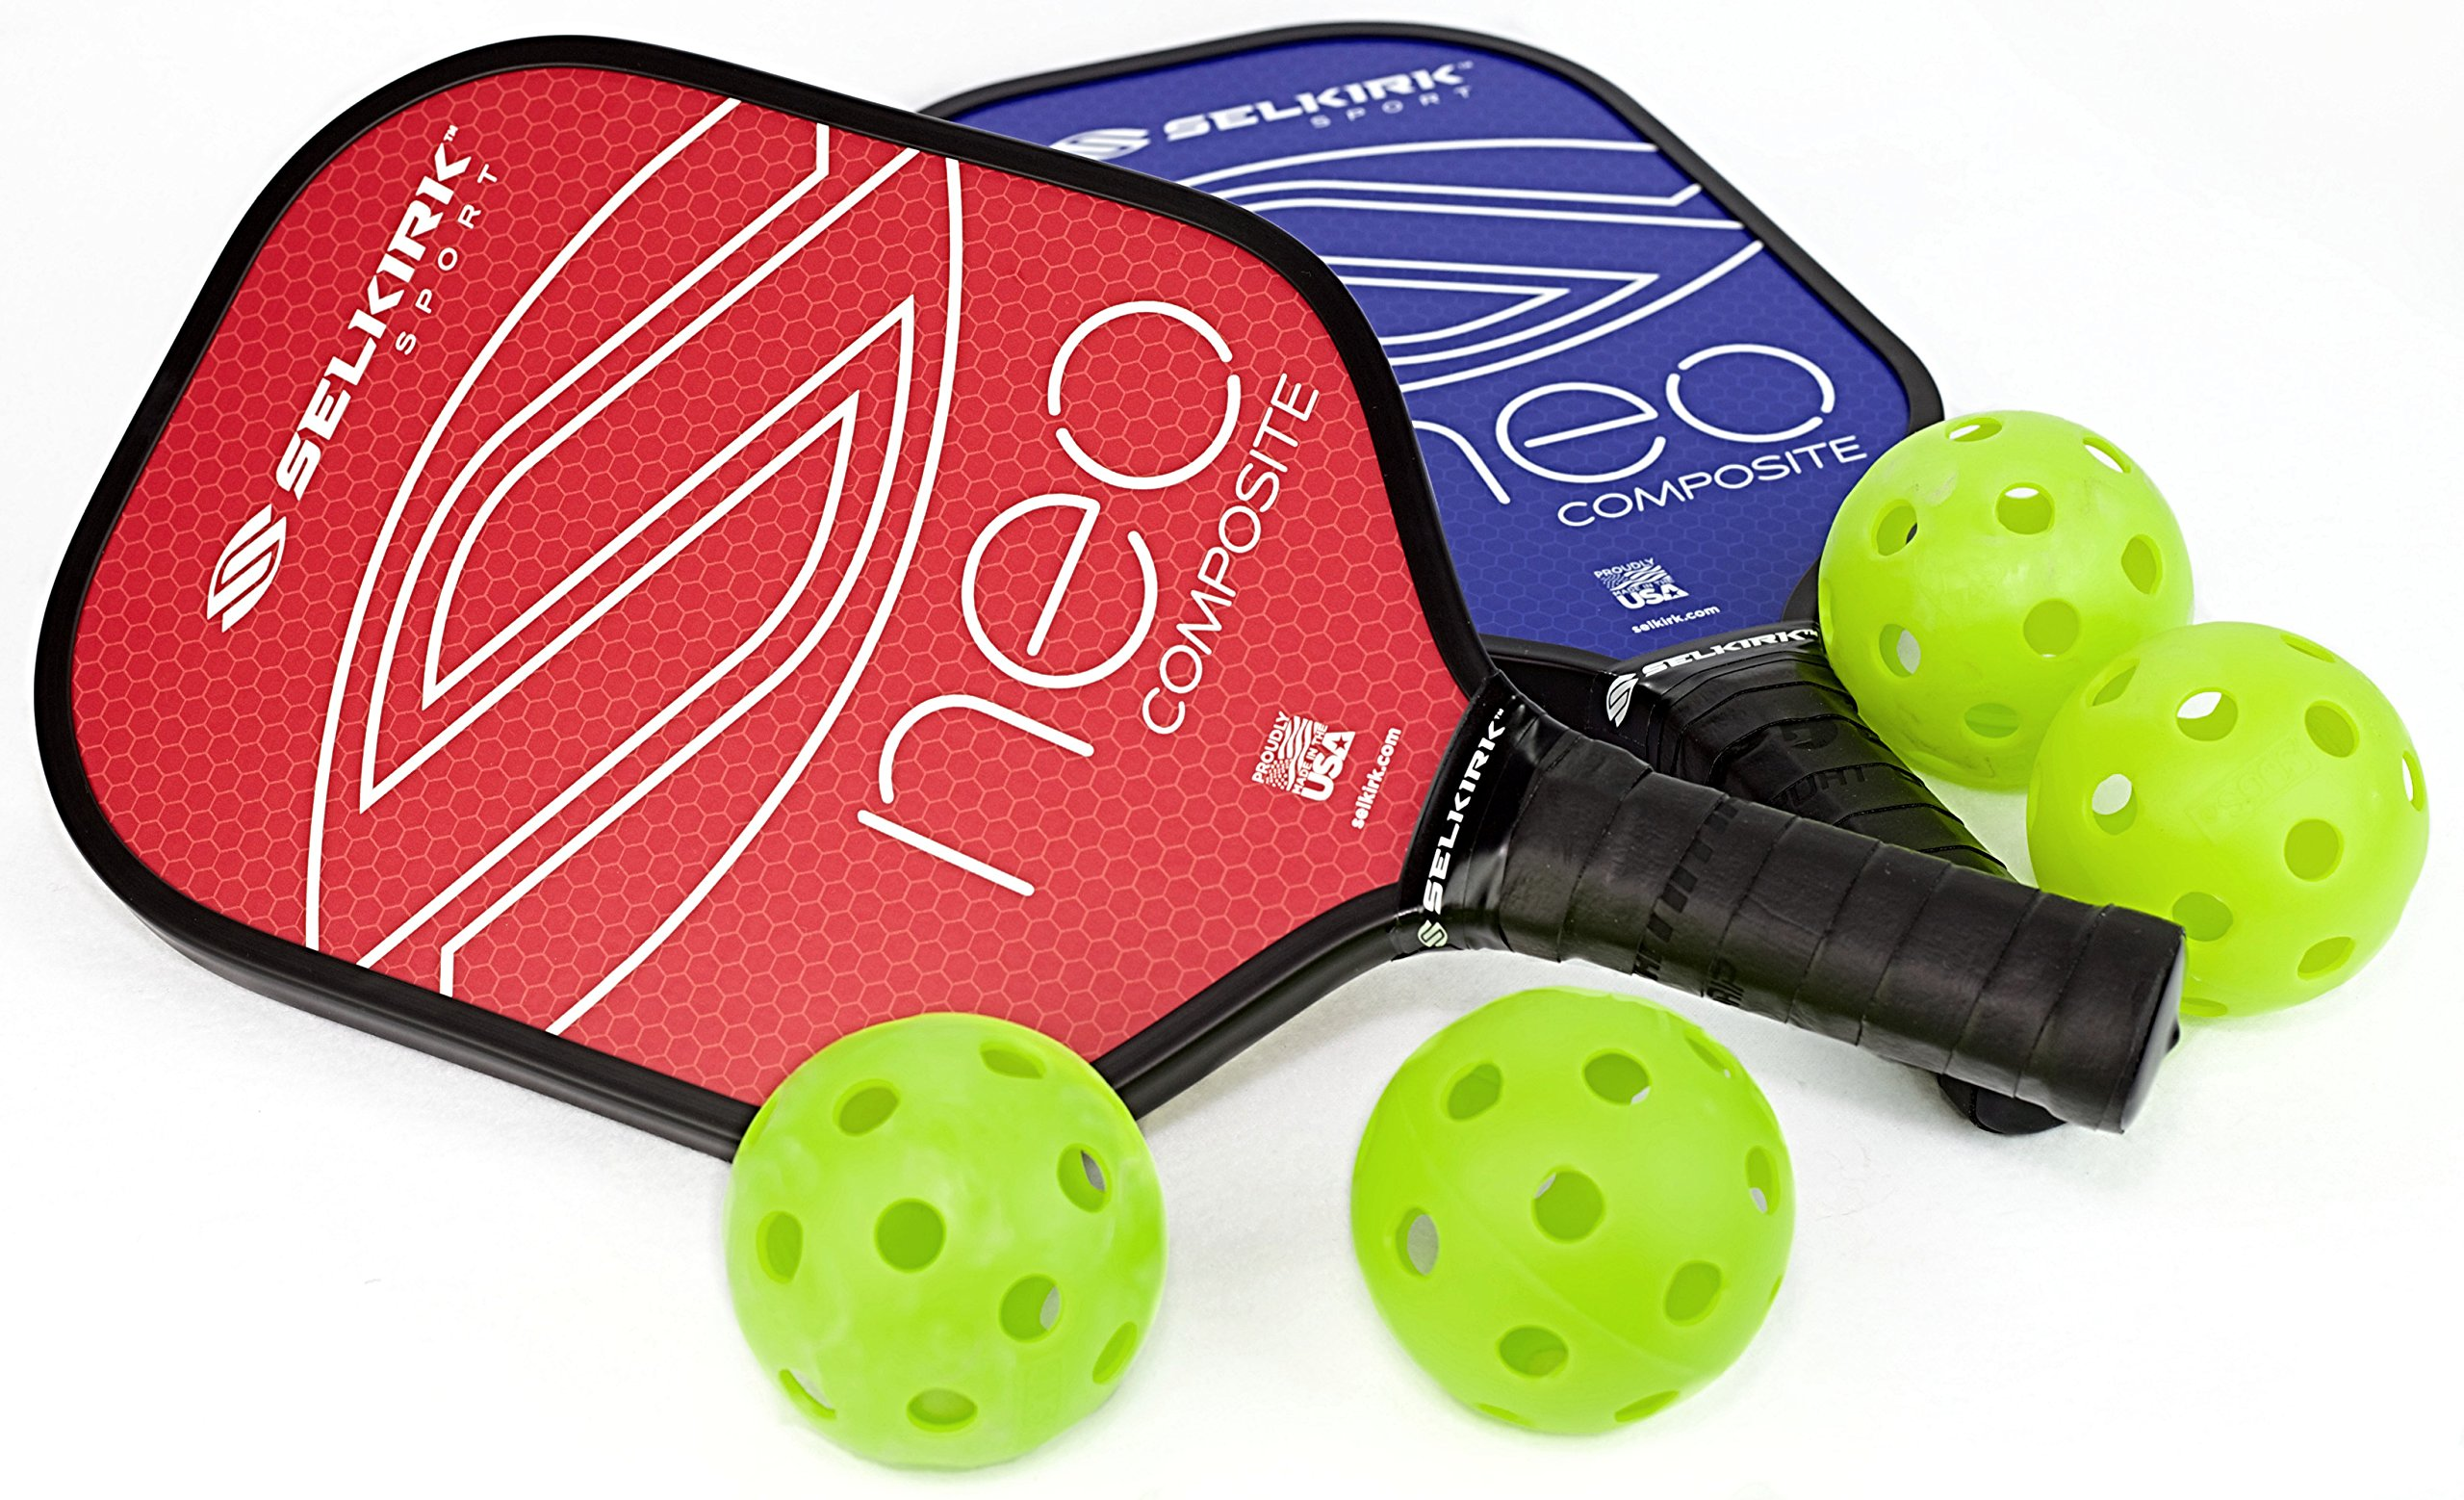 NEO Composite Pickleball Paddle Bundle with 2 Paddles and 4 Pickleballs by Selkirk Sport